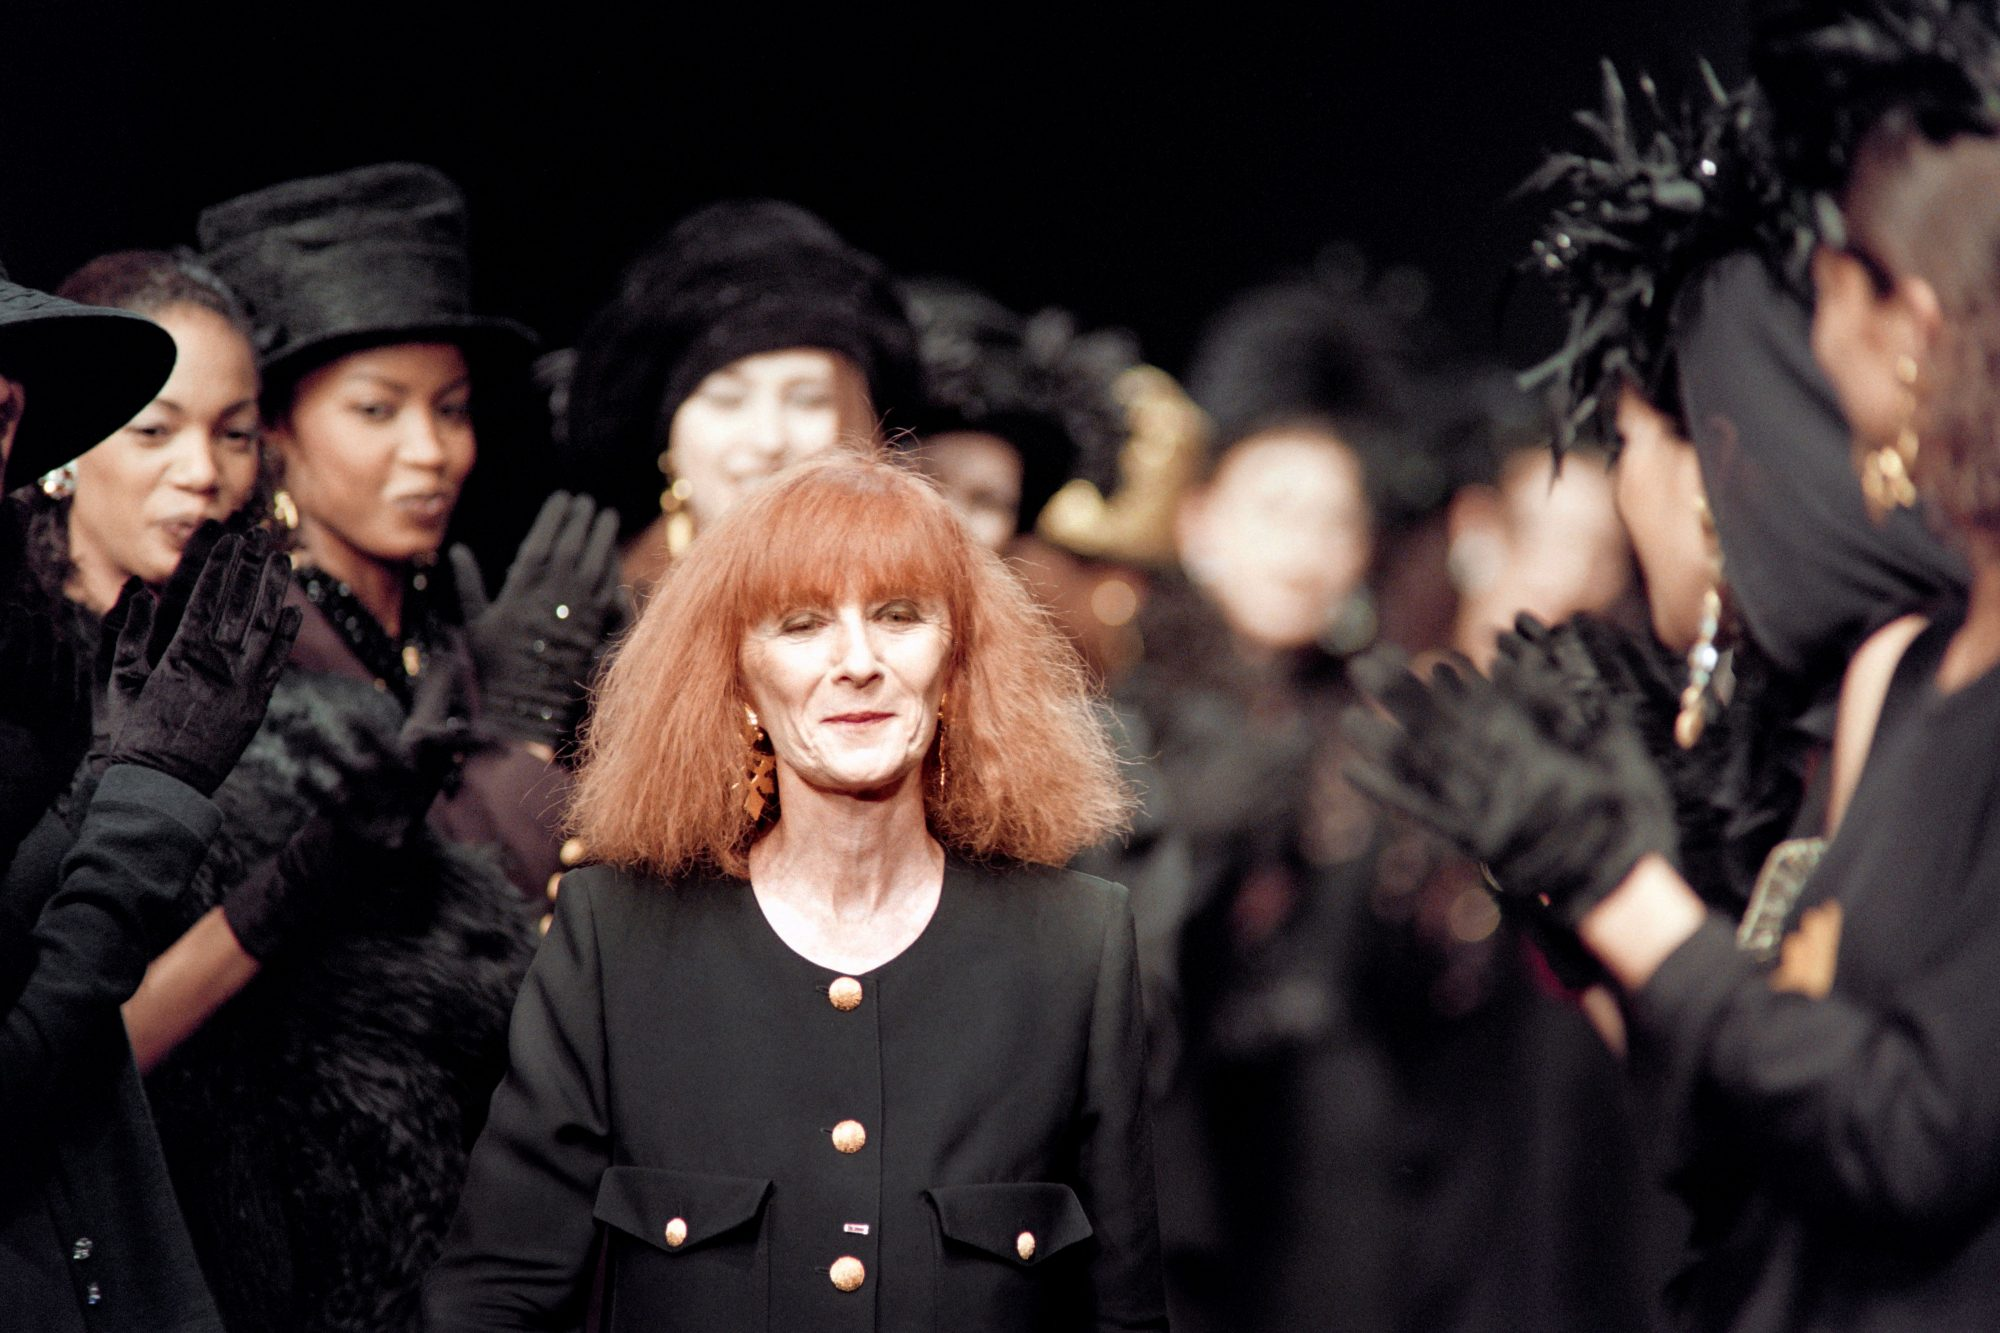 FRANCE-FASHION-PEOPLE-RYKIEL-OBIT-DEATH